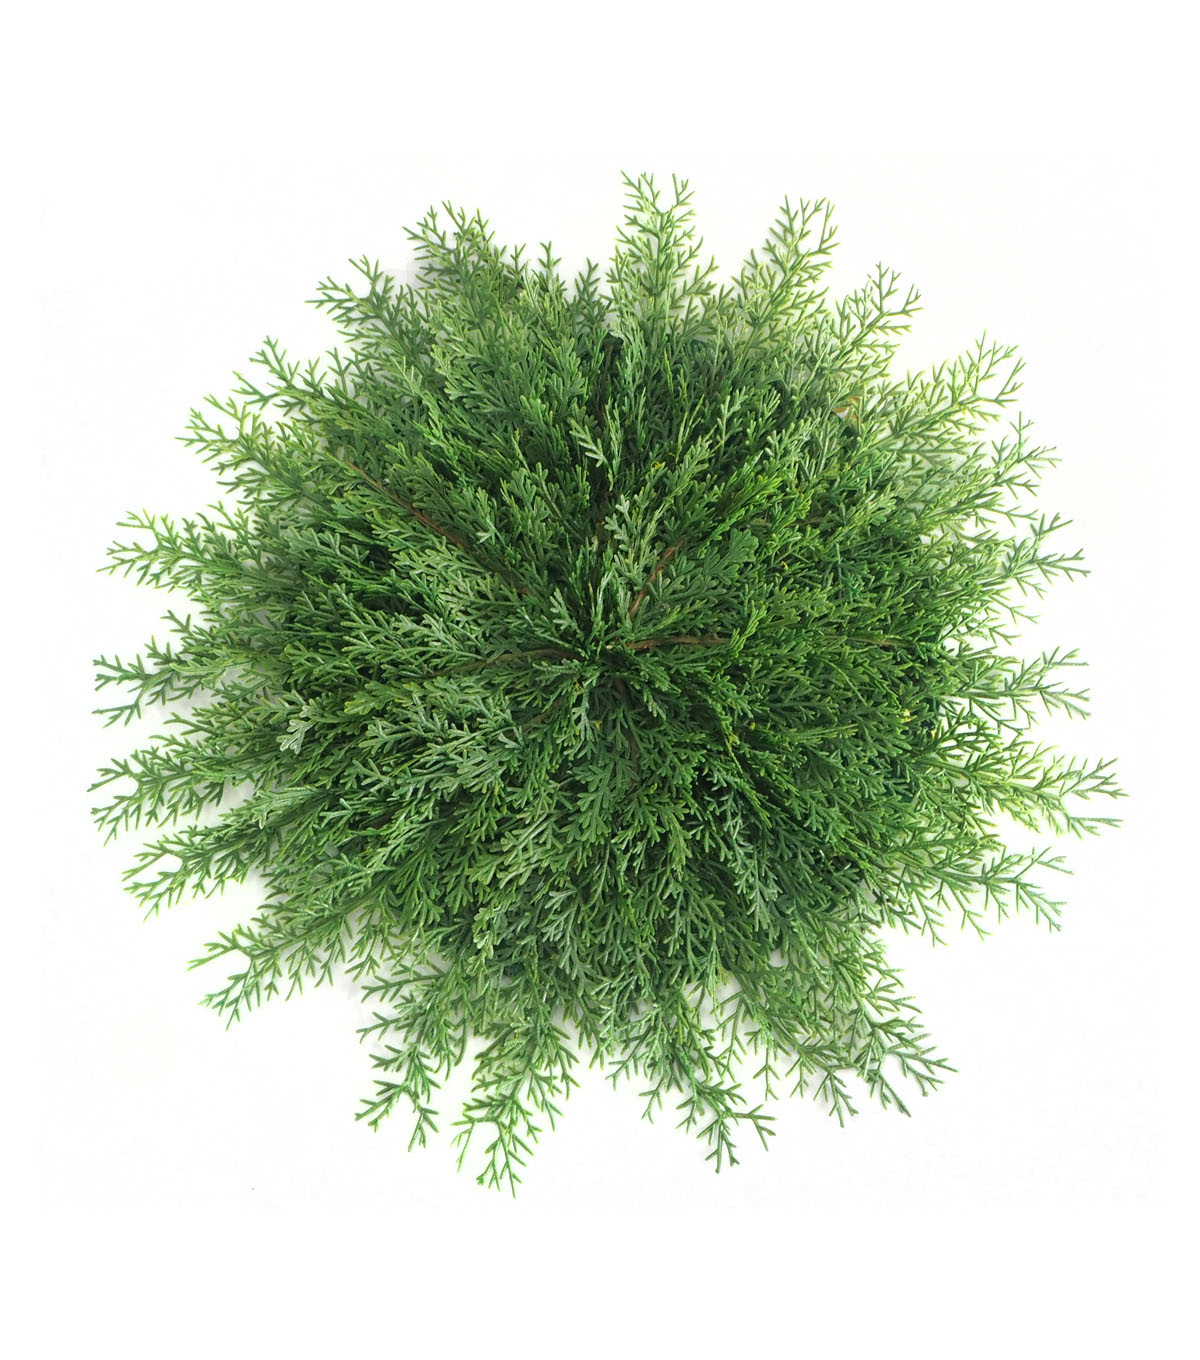 blooming holiday christmas greenery branch placemat - Christmas Greenery